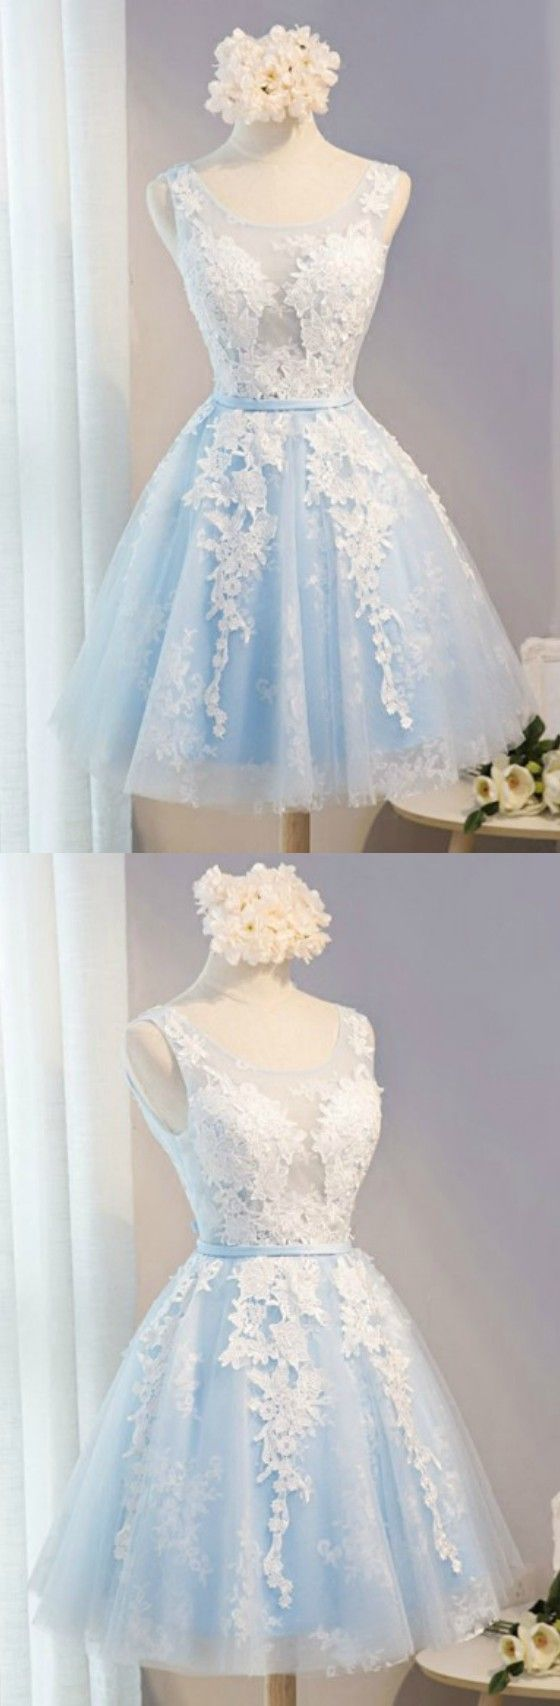 Blue A-line Scoop Neck Short Tulle Homecoming Dress With Appliques Lace